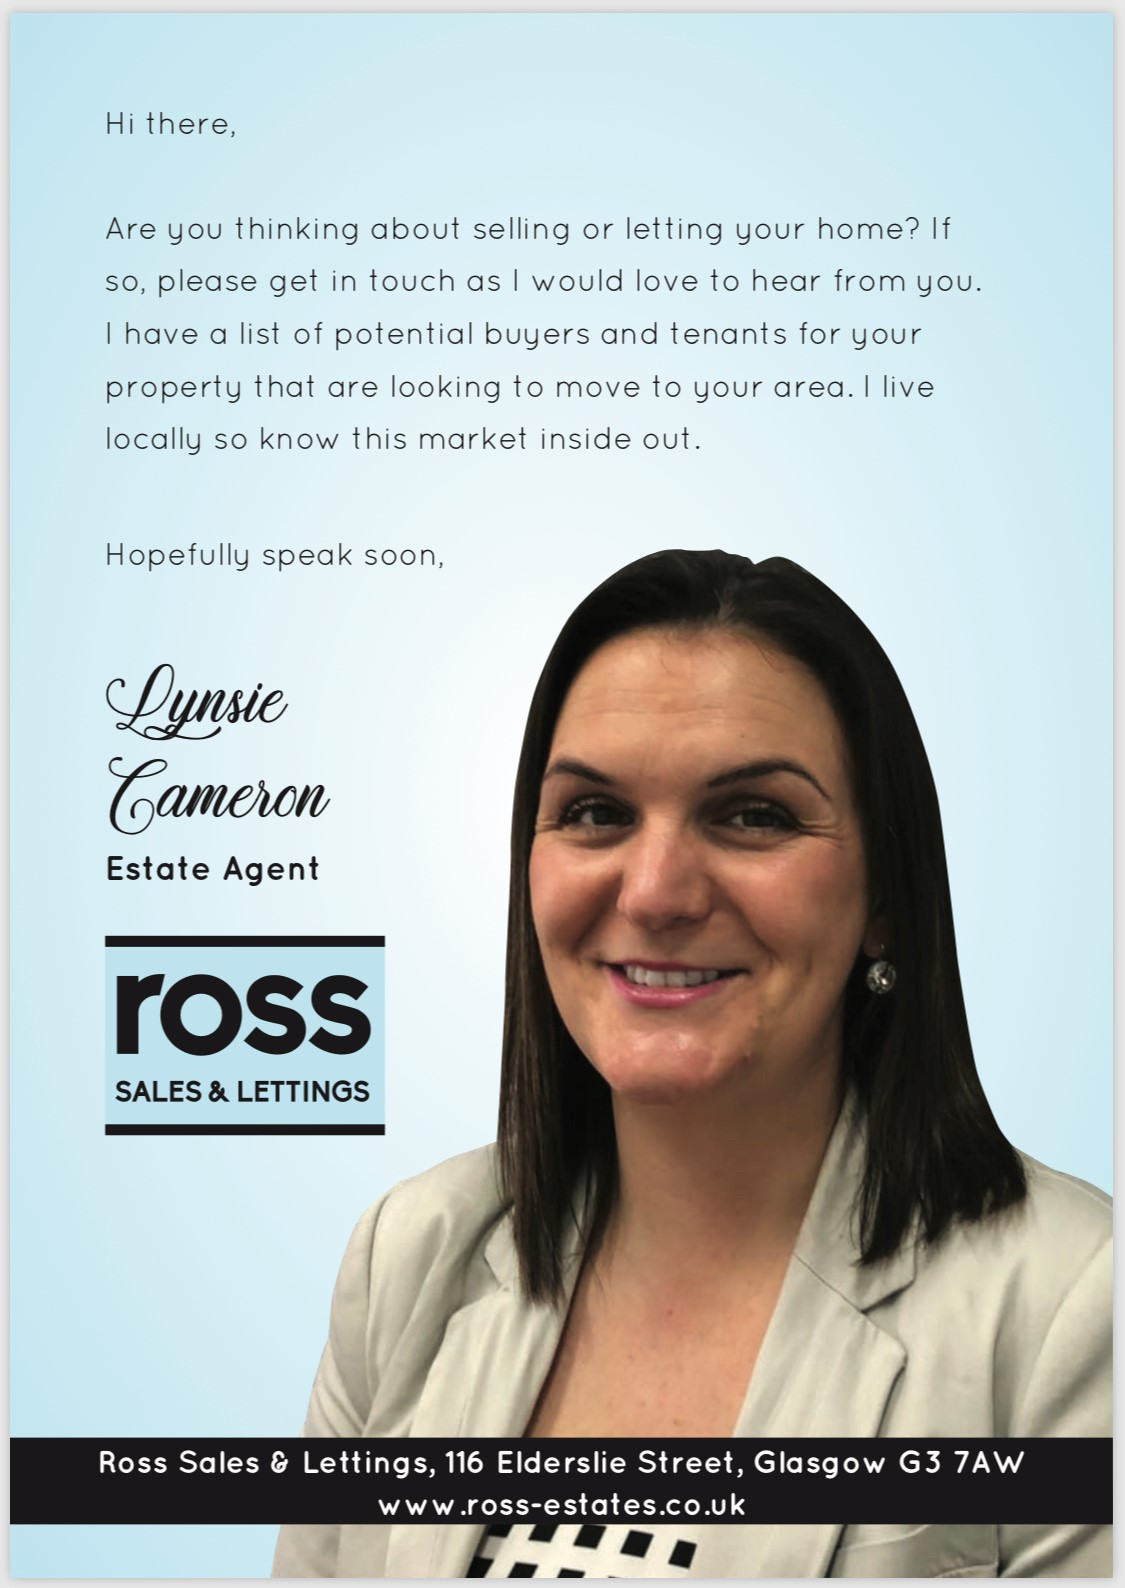 Lynsie Cameron is setting records for selling in Glasgow East and South Lanarkshire